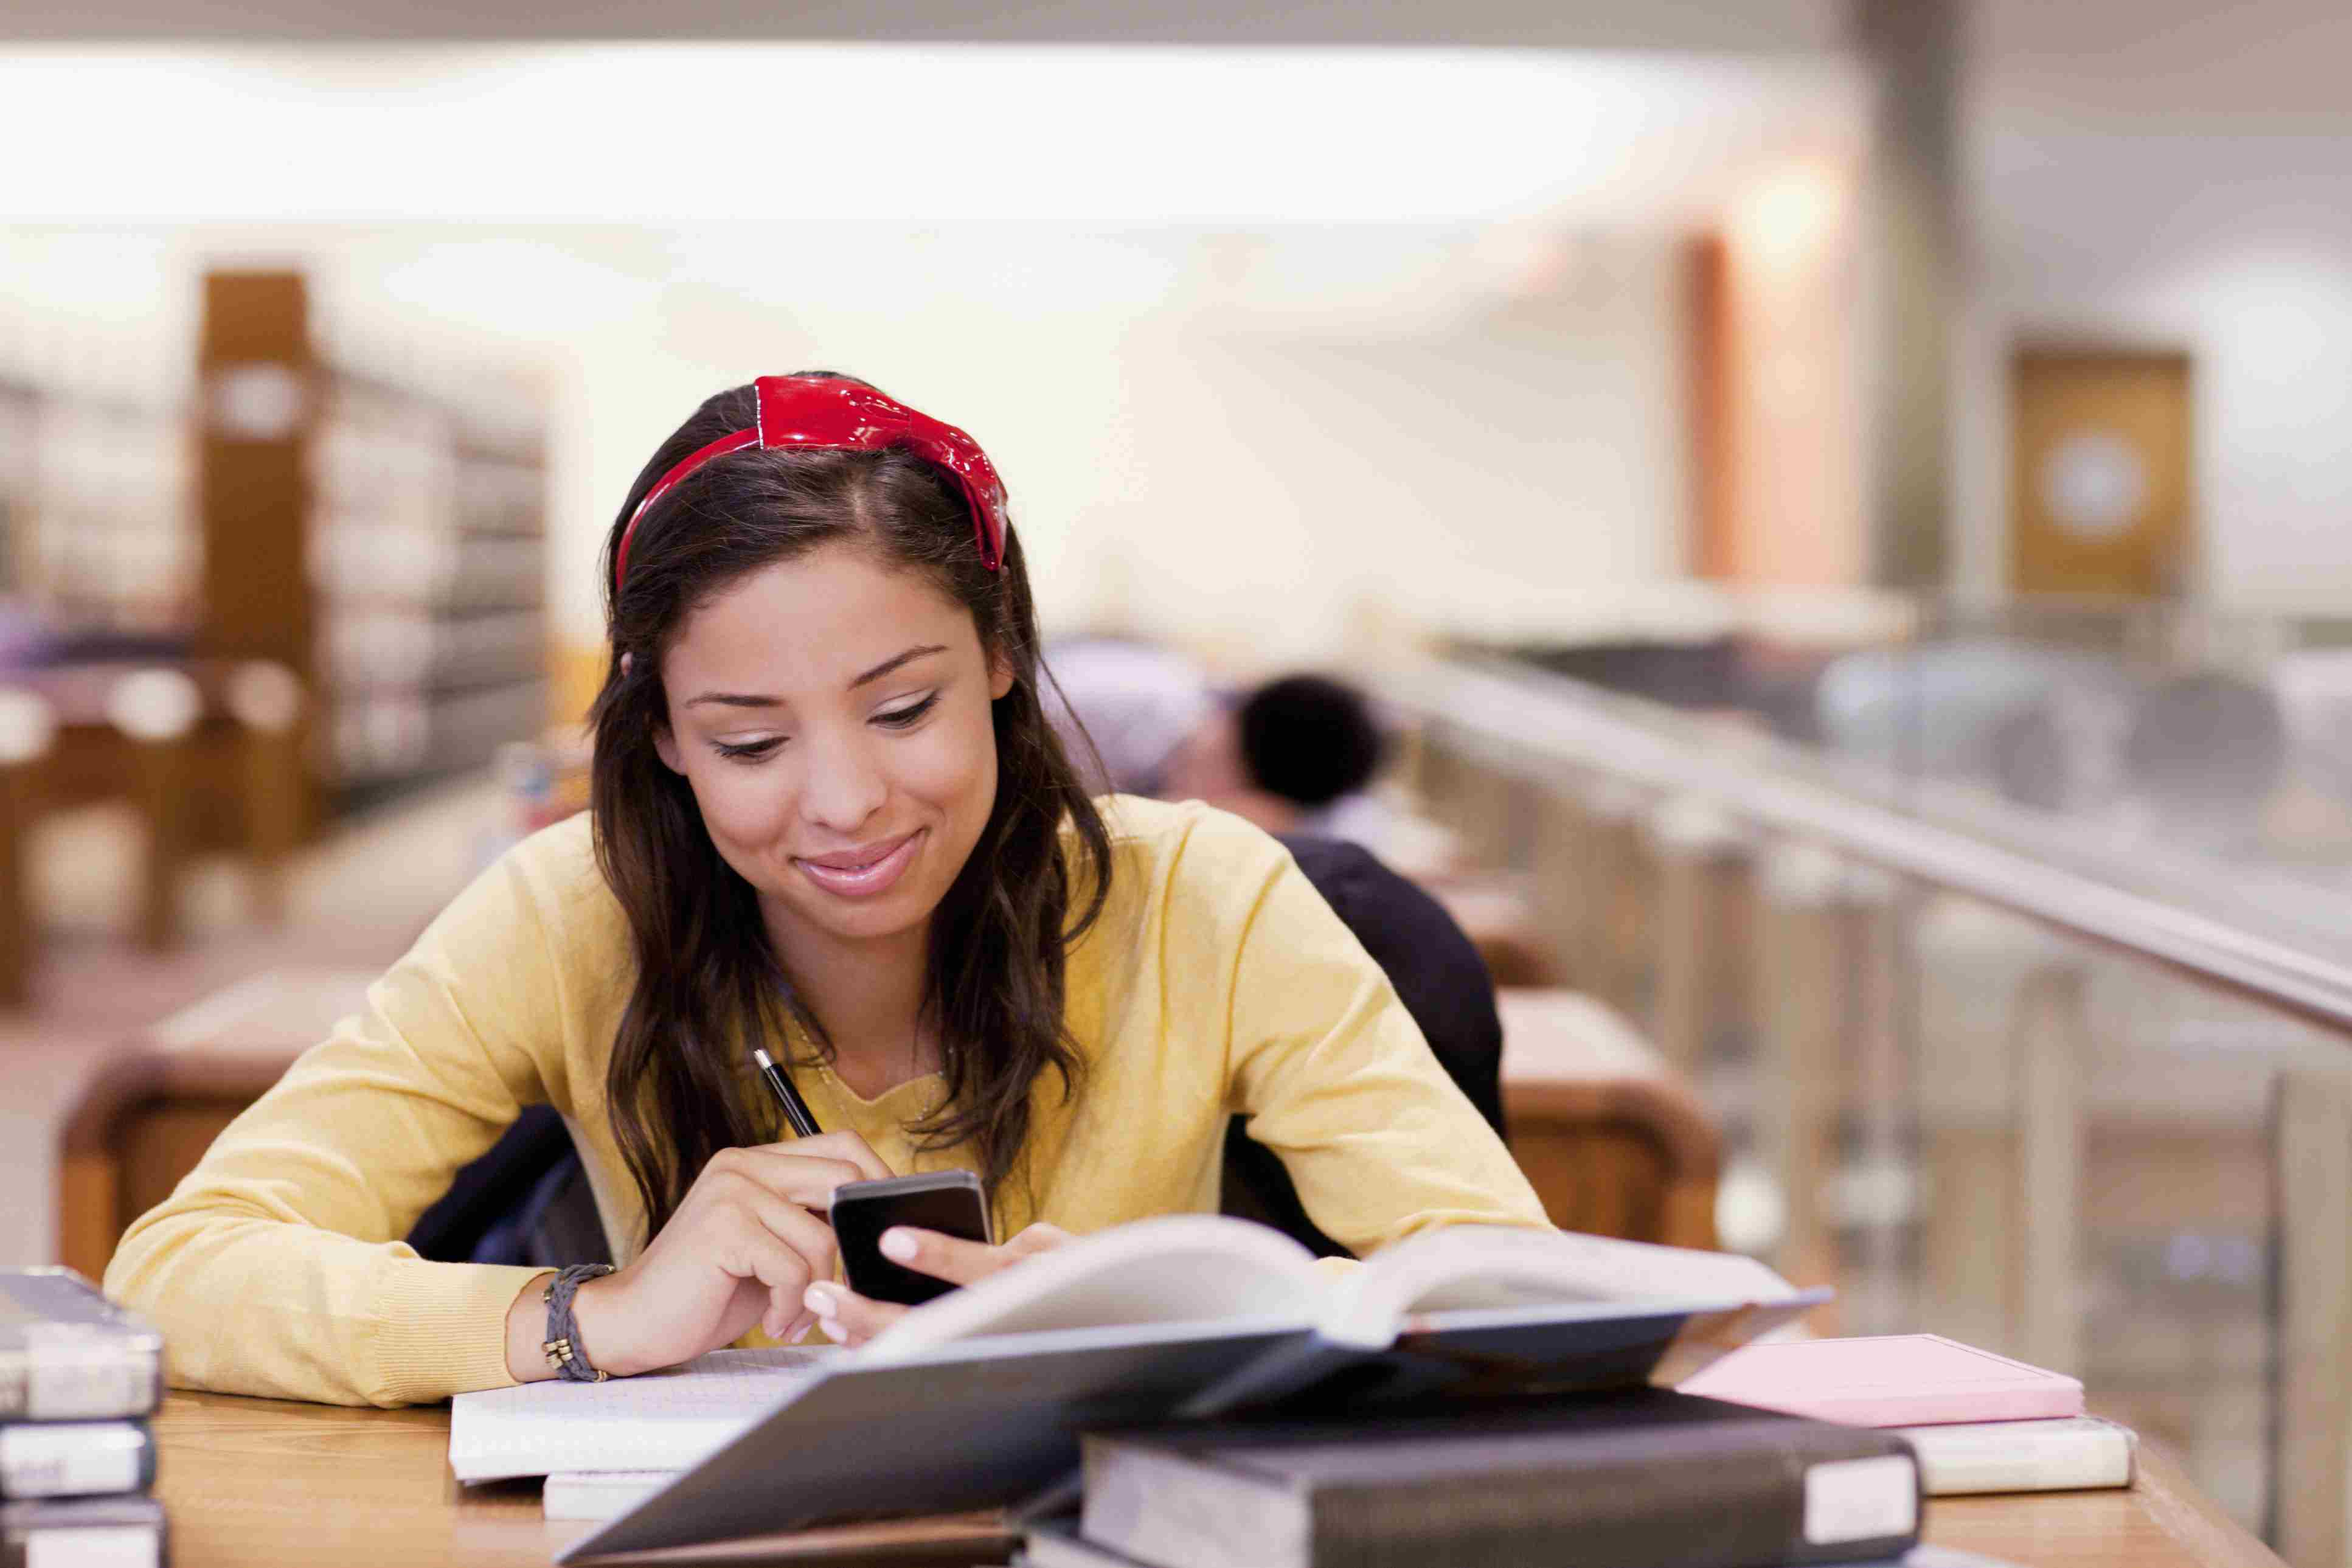 Young woman studying and using her smartphone in a library